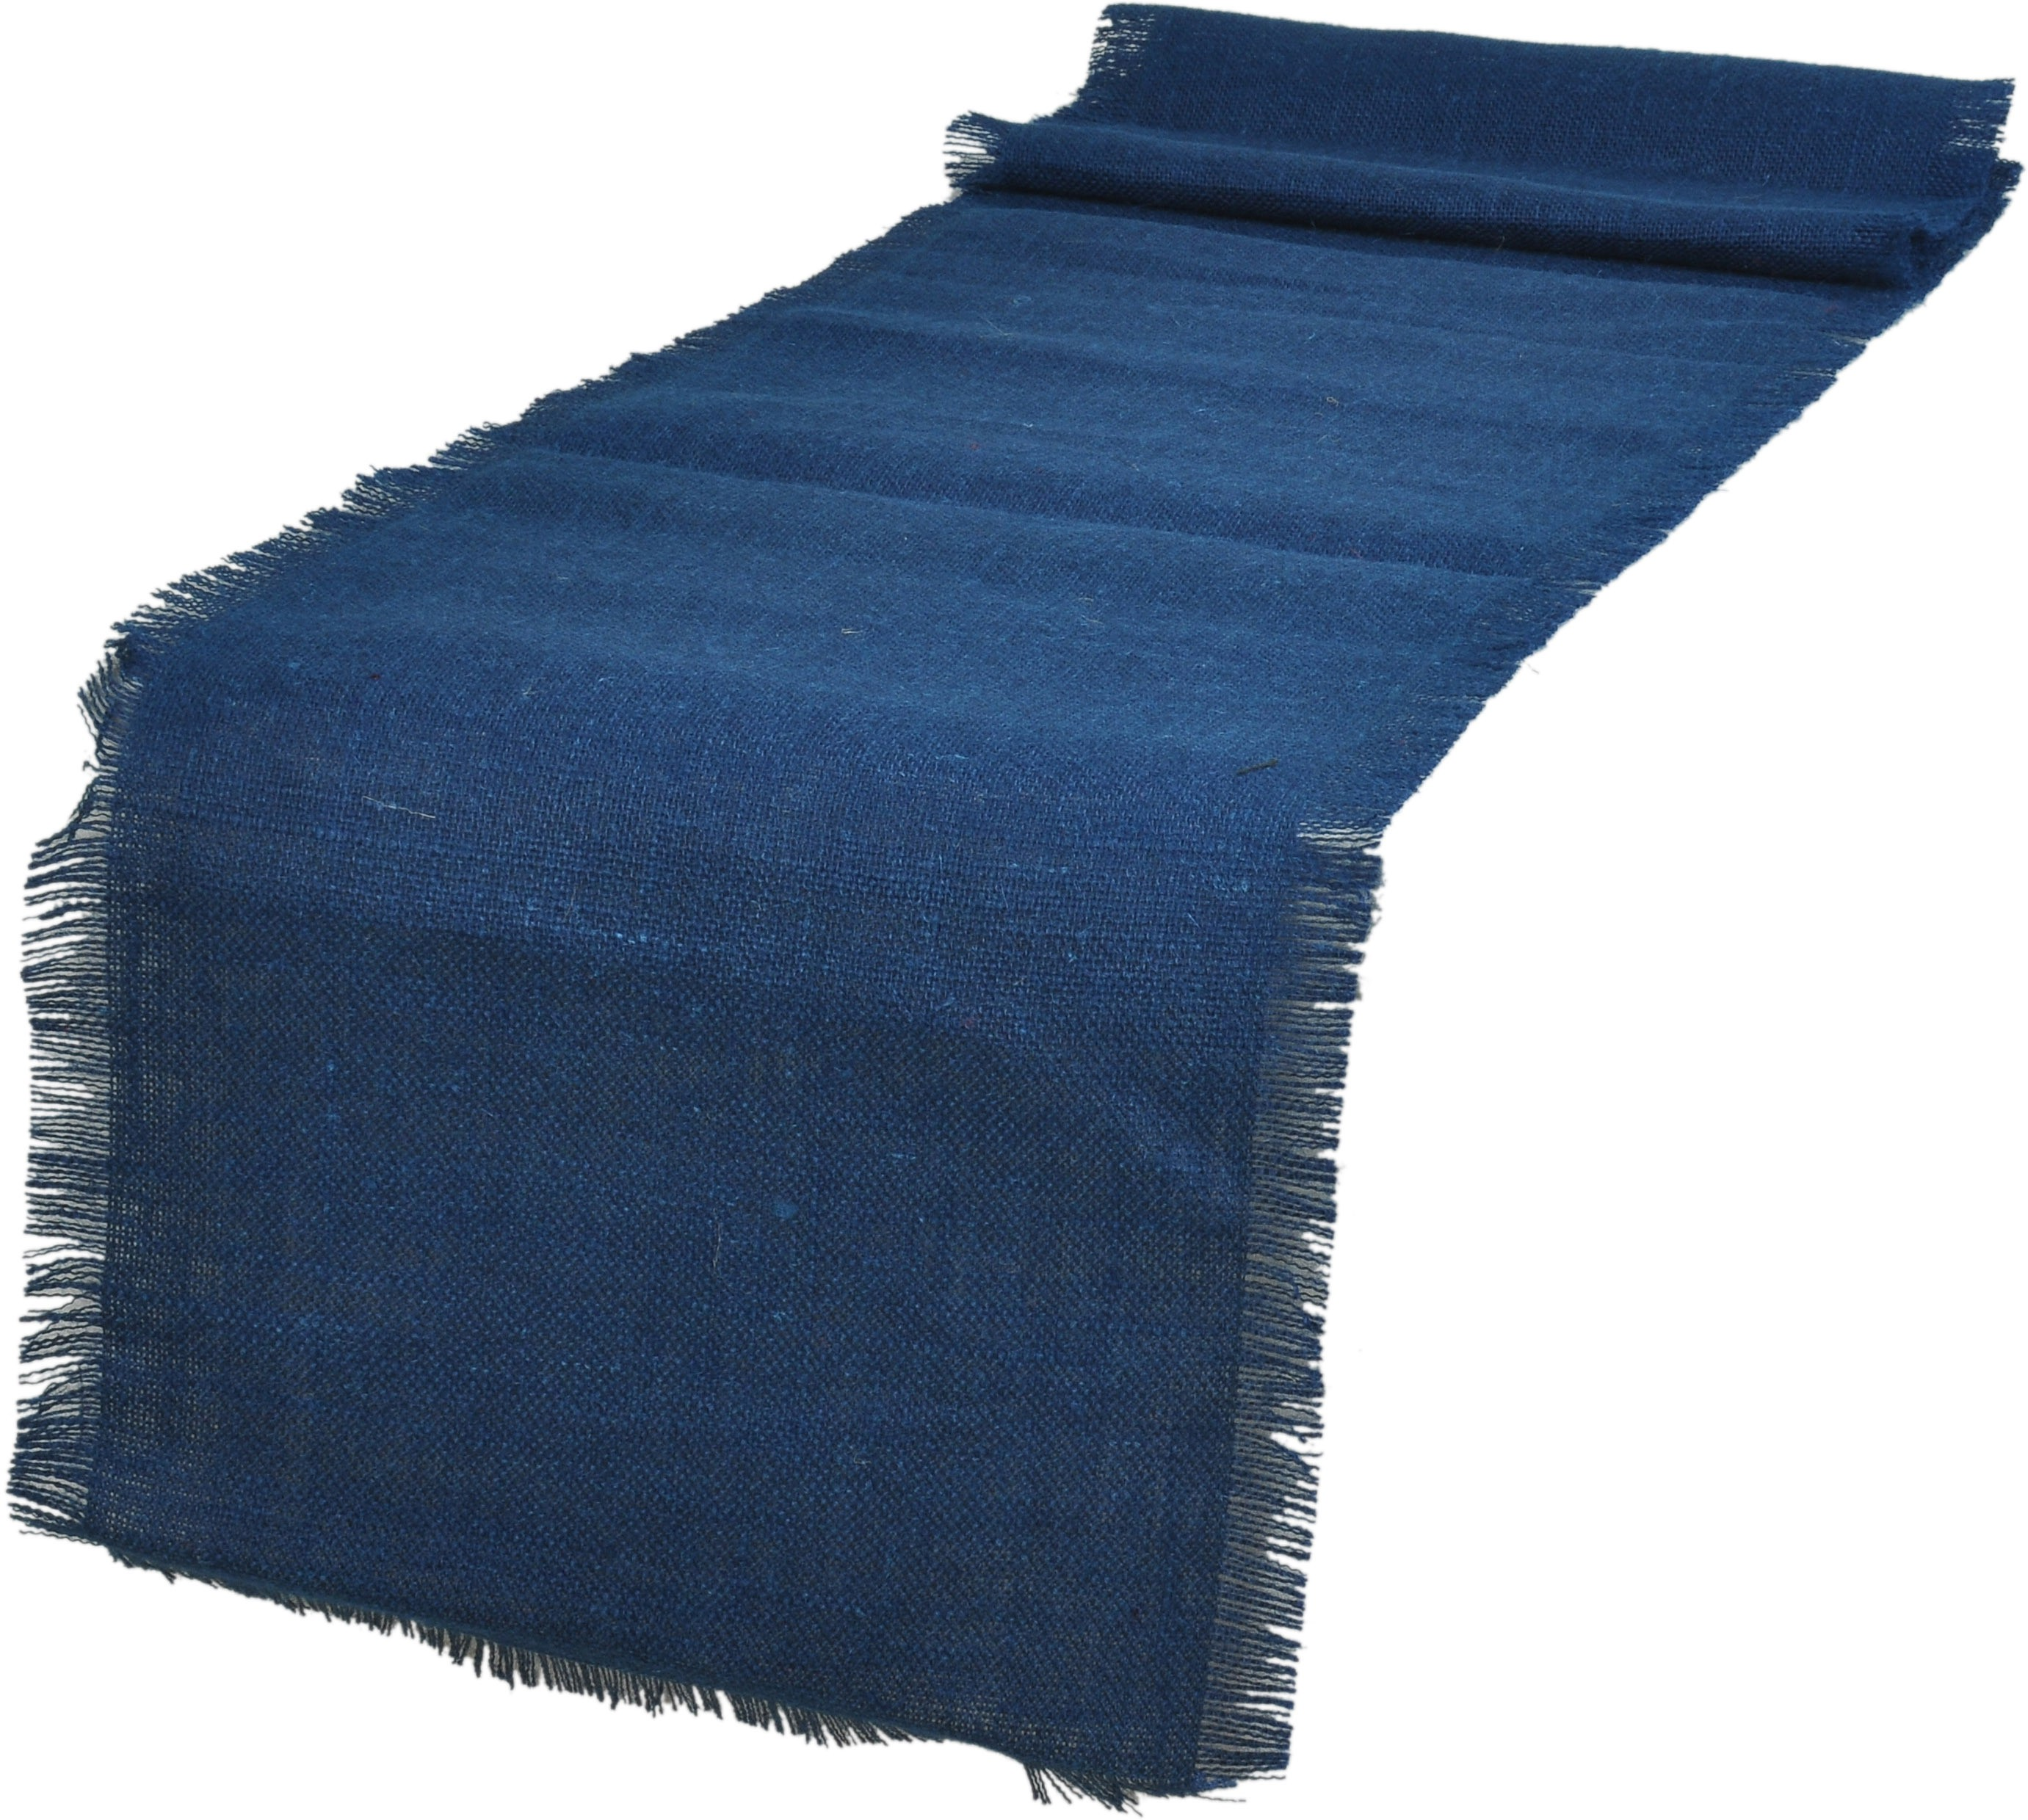 Rope International Light Blue 182 cm Table Runner